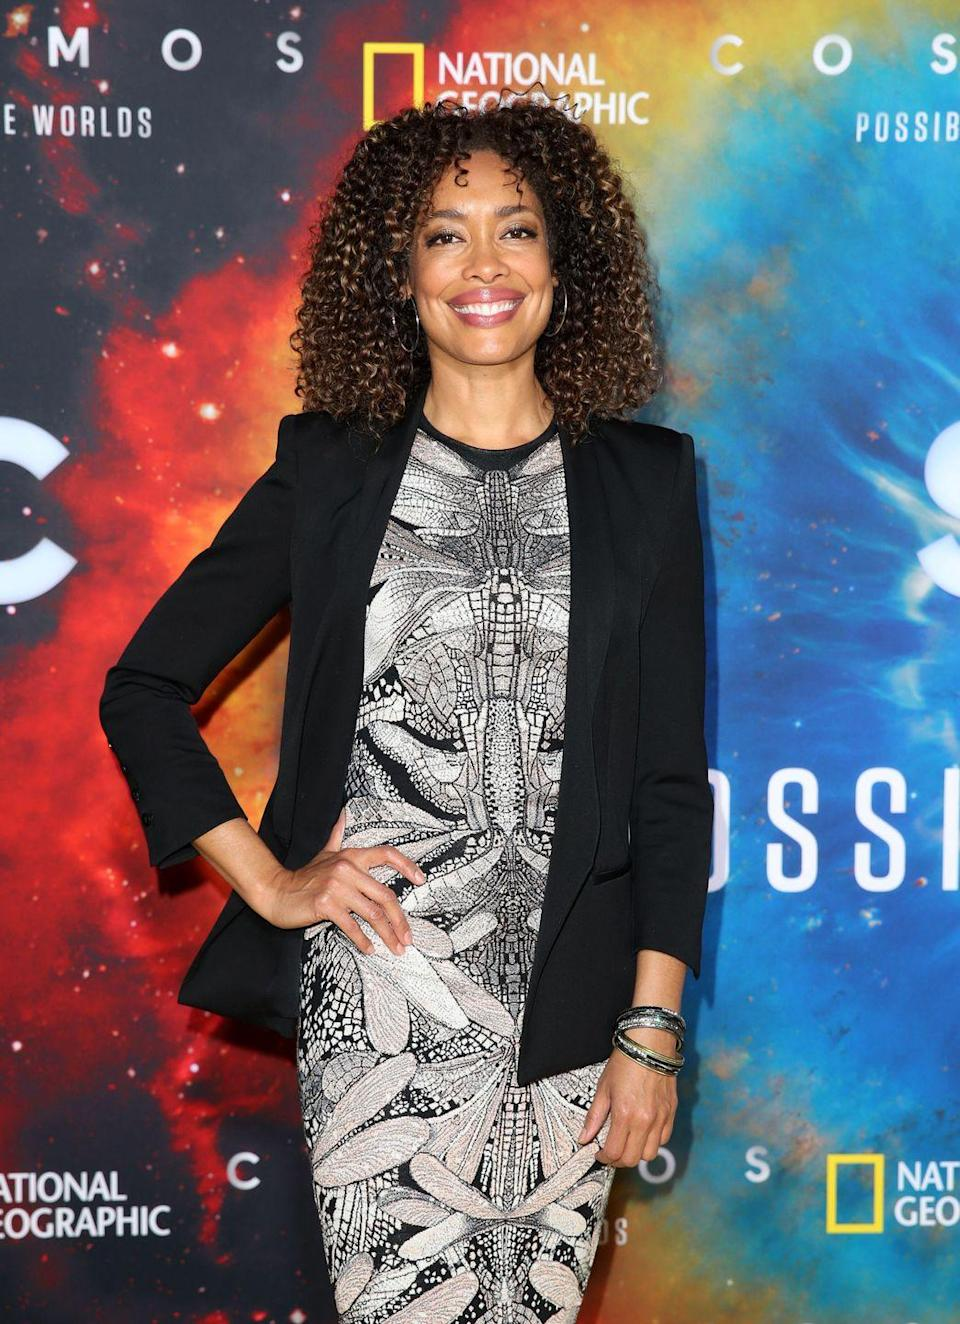 """<p>In 2019, Torres—a Cuban American—<a href=""""https://www.nbcnews.com/news/latino/pearson-star-gina-torres-first-afro-latina-create-produce-star-n1035886"""" rel=""""nofollow noopener"""" target=""""_blank"""" data-ylk=""""slk:became the first Afro-Latina"""" class=""""link rapid-noclick-resp"""">became the first Afro-Latina</a> to star, create, and produce her own show for USA Network's <em>Pearson</em>, a spin-off of the long running legal drama, <em>Suits</em>. </p><p>Torres recently opened up to <a href=""""https://www.cnn.com/2021/06/11/entertainment/latinxcellence-gina-torres/index.html"""" rel=""""nofollow noopener"""" target=""""_blank"""" data-ylk=""""slk:CNN"""" class=""""link rapid-noclick-resp""""><em>CNN</em></a> about the choice she's long had to make between being Black and Latino, saying that she was considered """"too exotic"""" or """"confusing"""" for certain roles. But she decided to push for her character on <em>9-1-1: Lone Star</em>, soon to be in its third season, to be Afro-Latina in order to """"let the audience know that this is also the face of Latinidad."""" And when asked about what the industry could do to improve Latinx representation, her answer was simple: hire us.</p><p>""""It's not that hard,"""" she said. """"We need to be in front of the camera, behind the camera, we need to be writing the words, we need to be directing these stories. There's so much room in the industry. If we all get together and create a system by which we can nurture each other's talents, bring people under the umbrella and bring them into the fold. Then the pool widens so that you have more to choose from and more to pick from.""""</p>"""